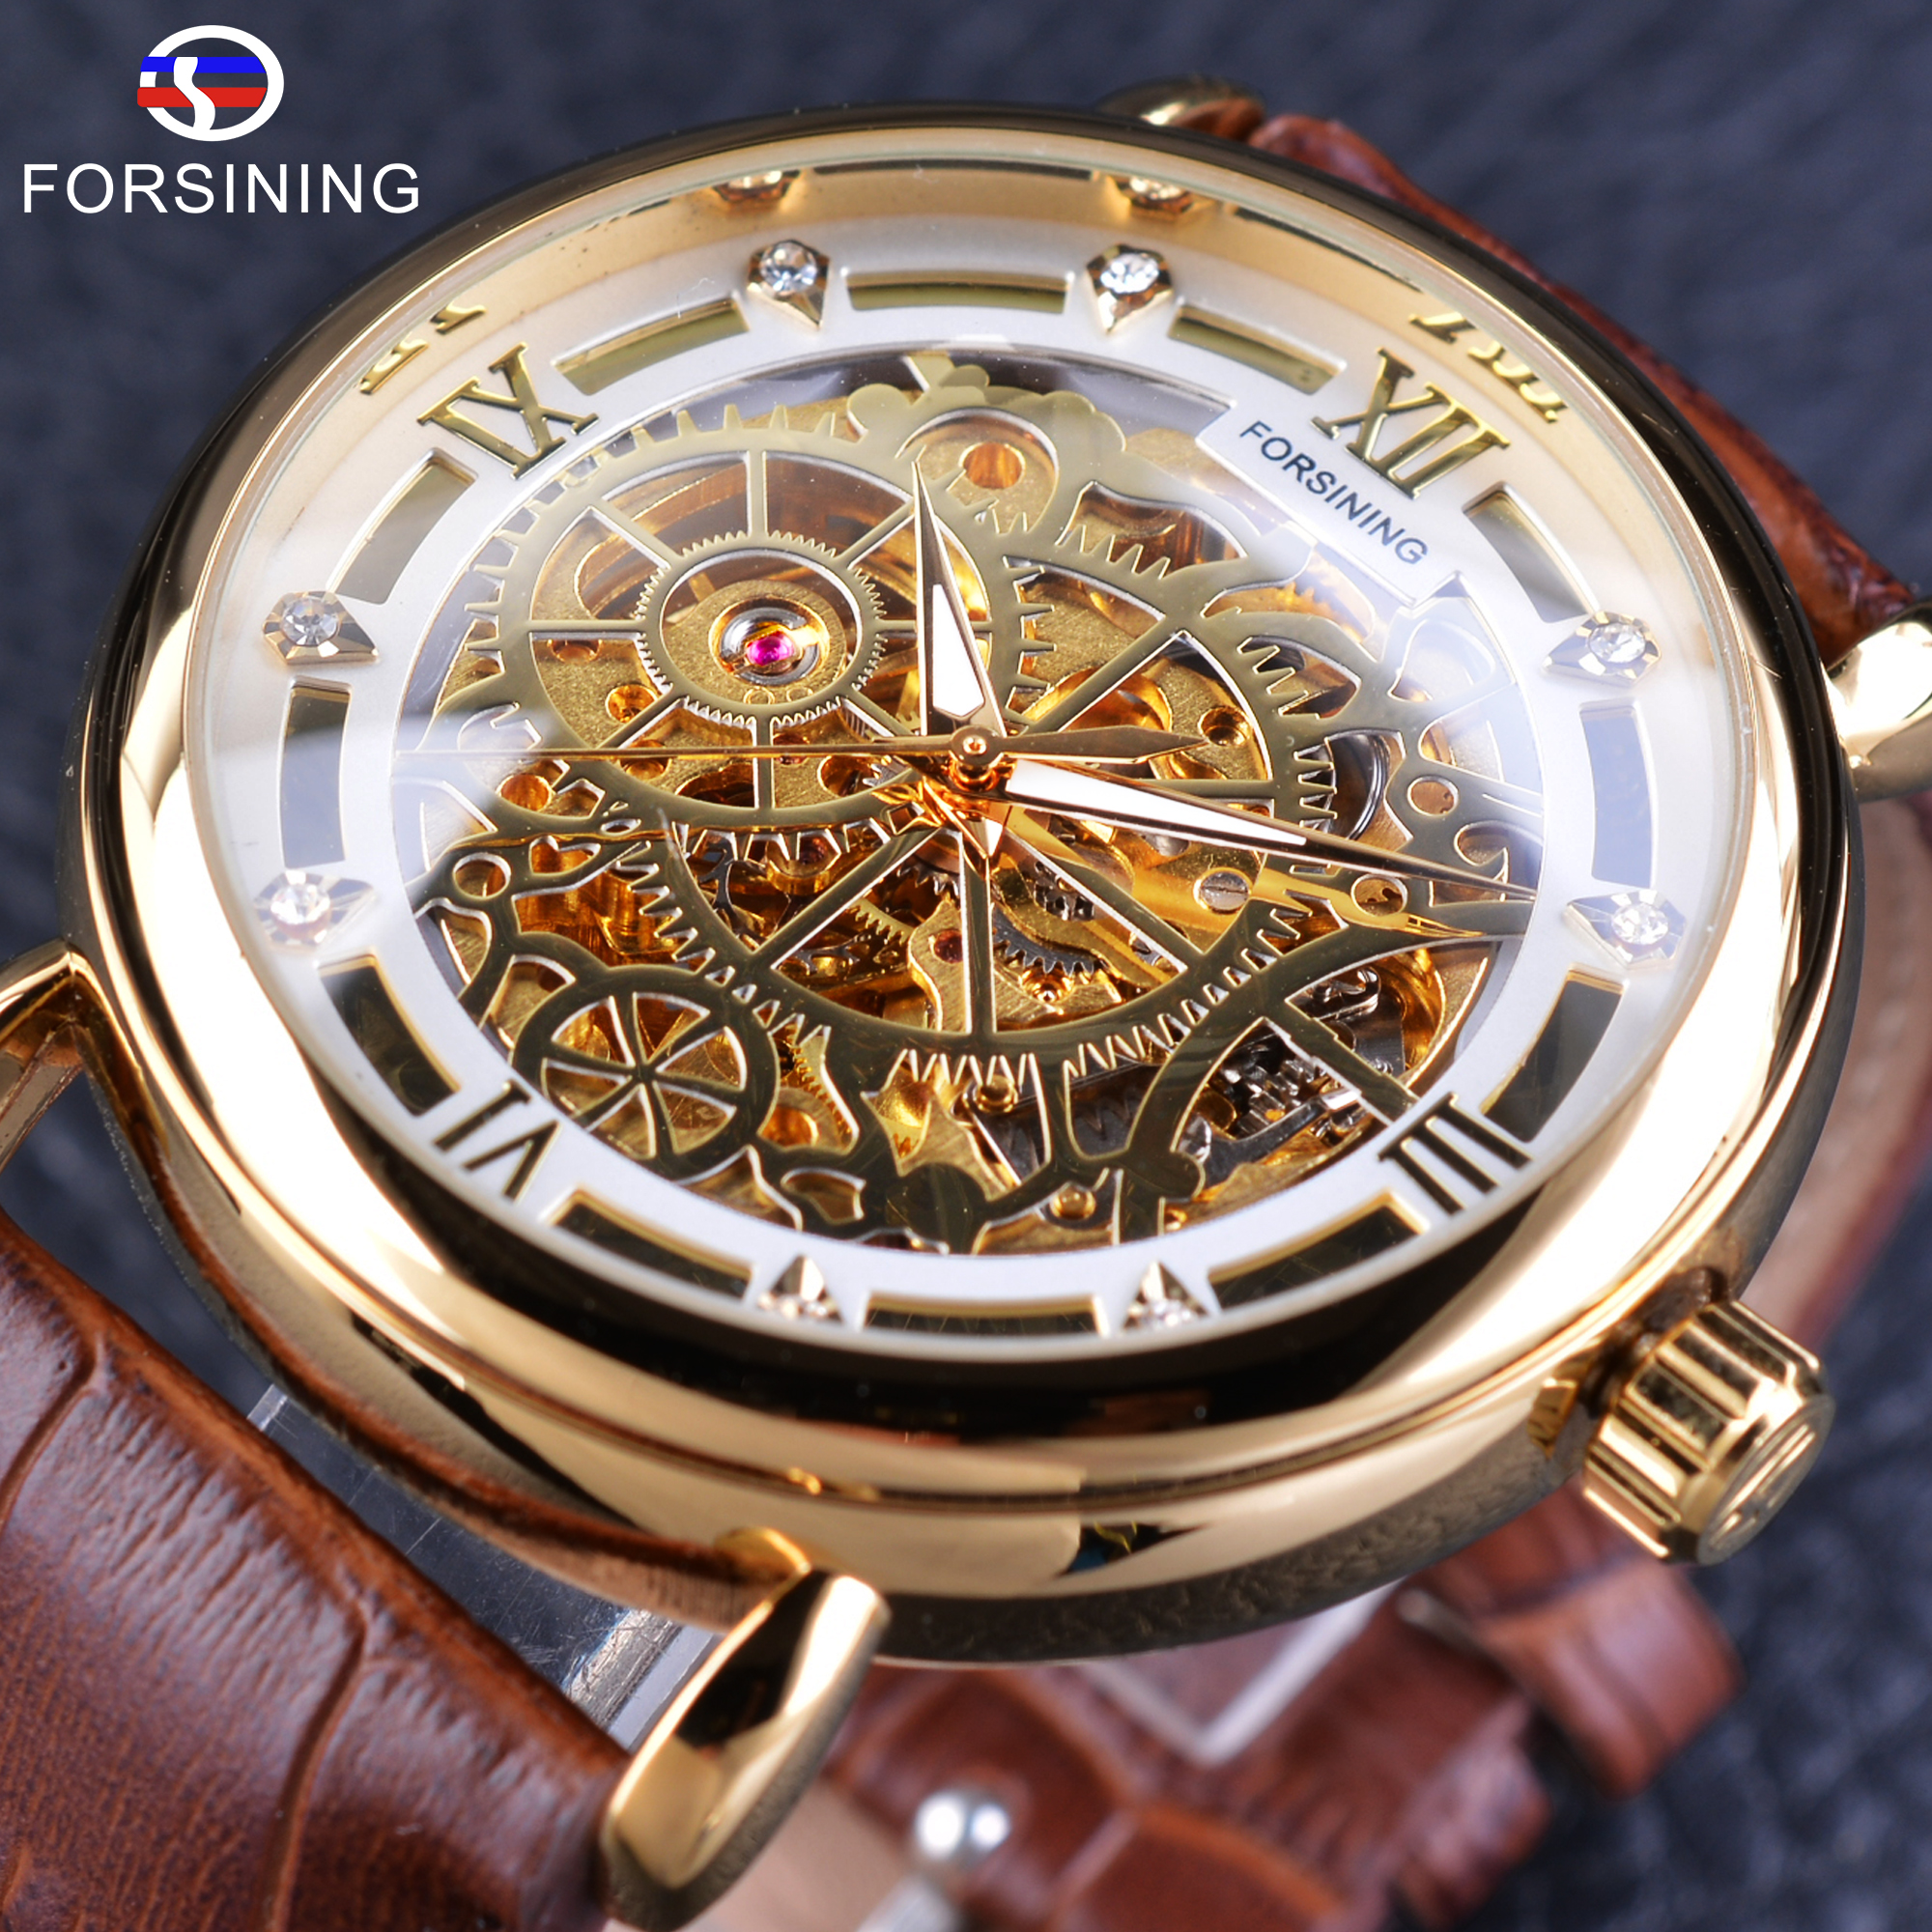 Forsining font b Men s b font Automatic Self Wind Watch Golden Skeleton Wristwatch with Brown